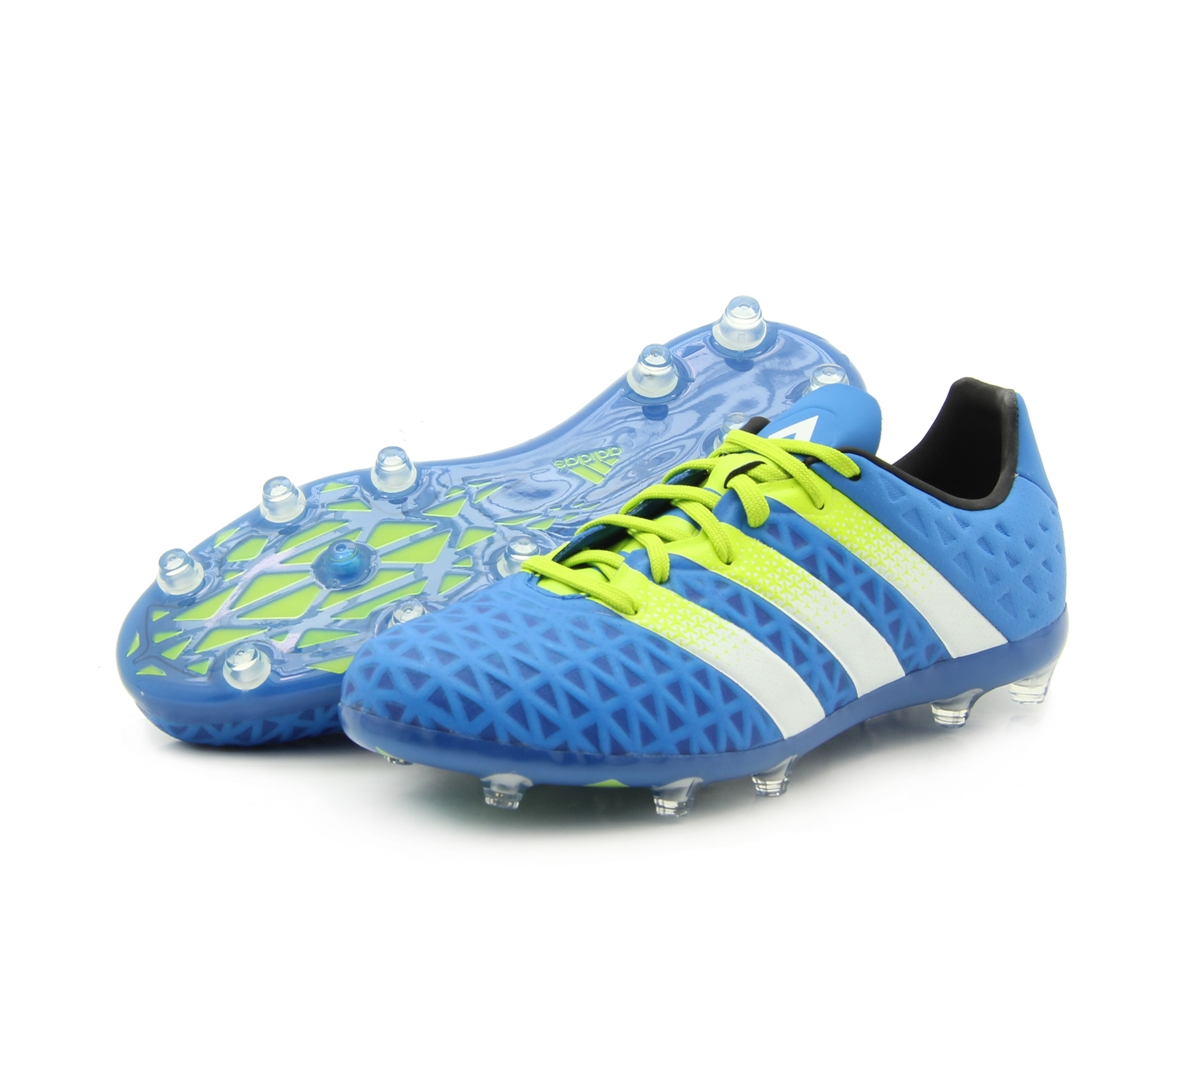 super popular 97669 fd8d3 Adidas ACE 16.1 Youth FG AG Soccer Cleats (Shock Blue White Solar